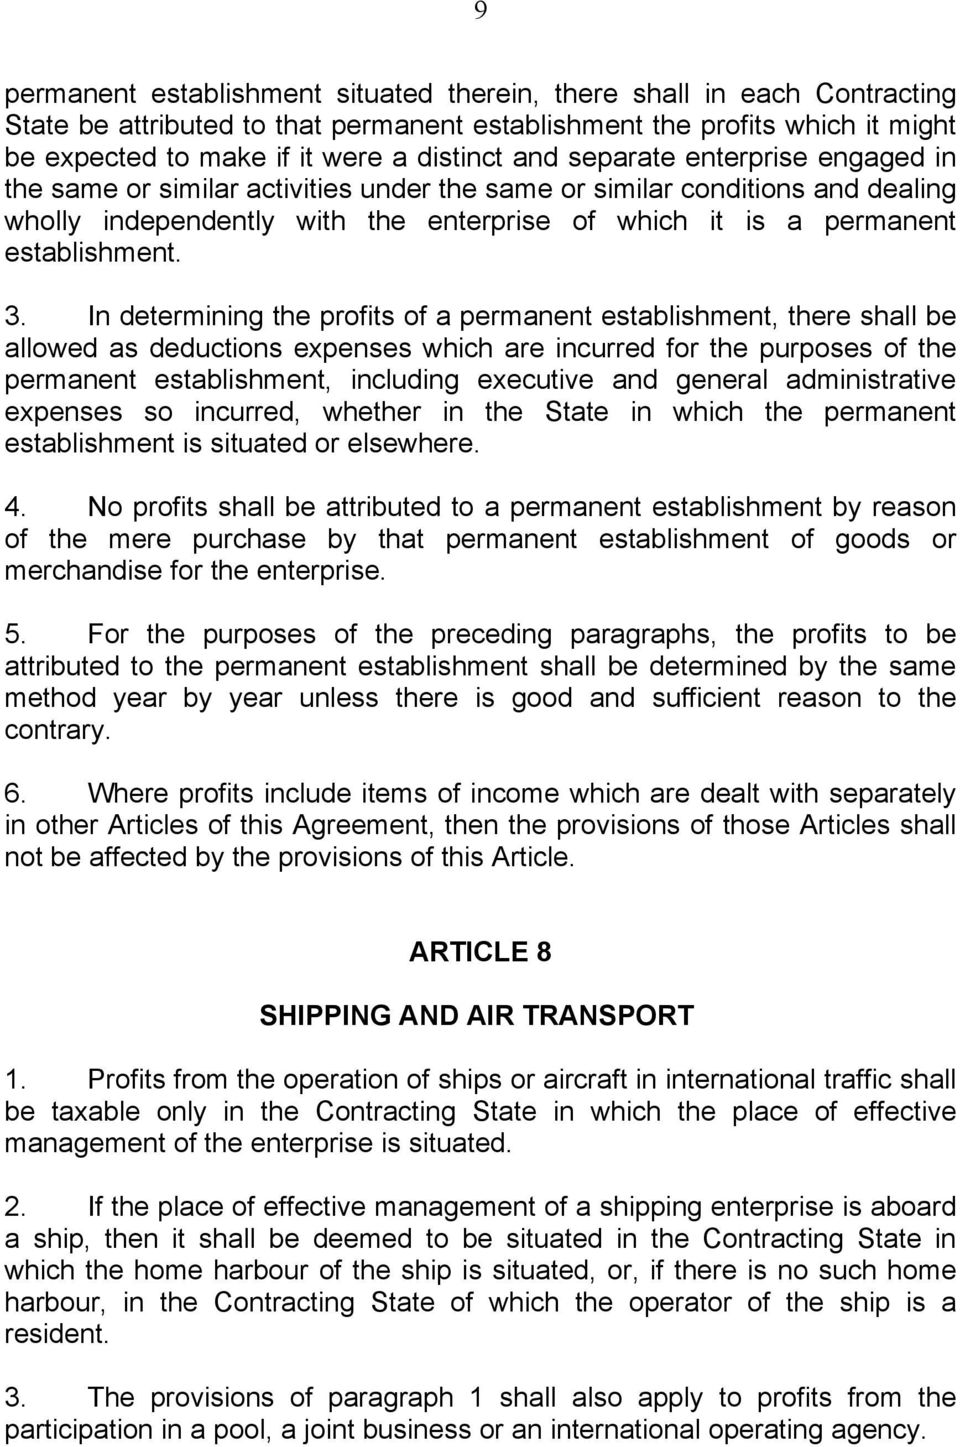 In determining the profits of a permanent establishment, there shall be allowed as deductions expenses which are incurred for the purposes of the permanent establishment, including executive and